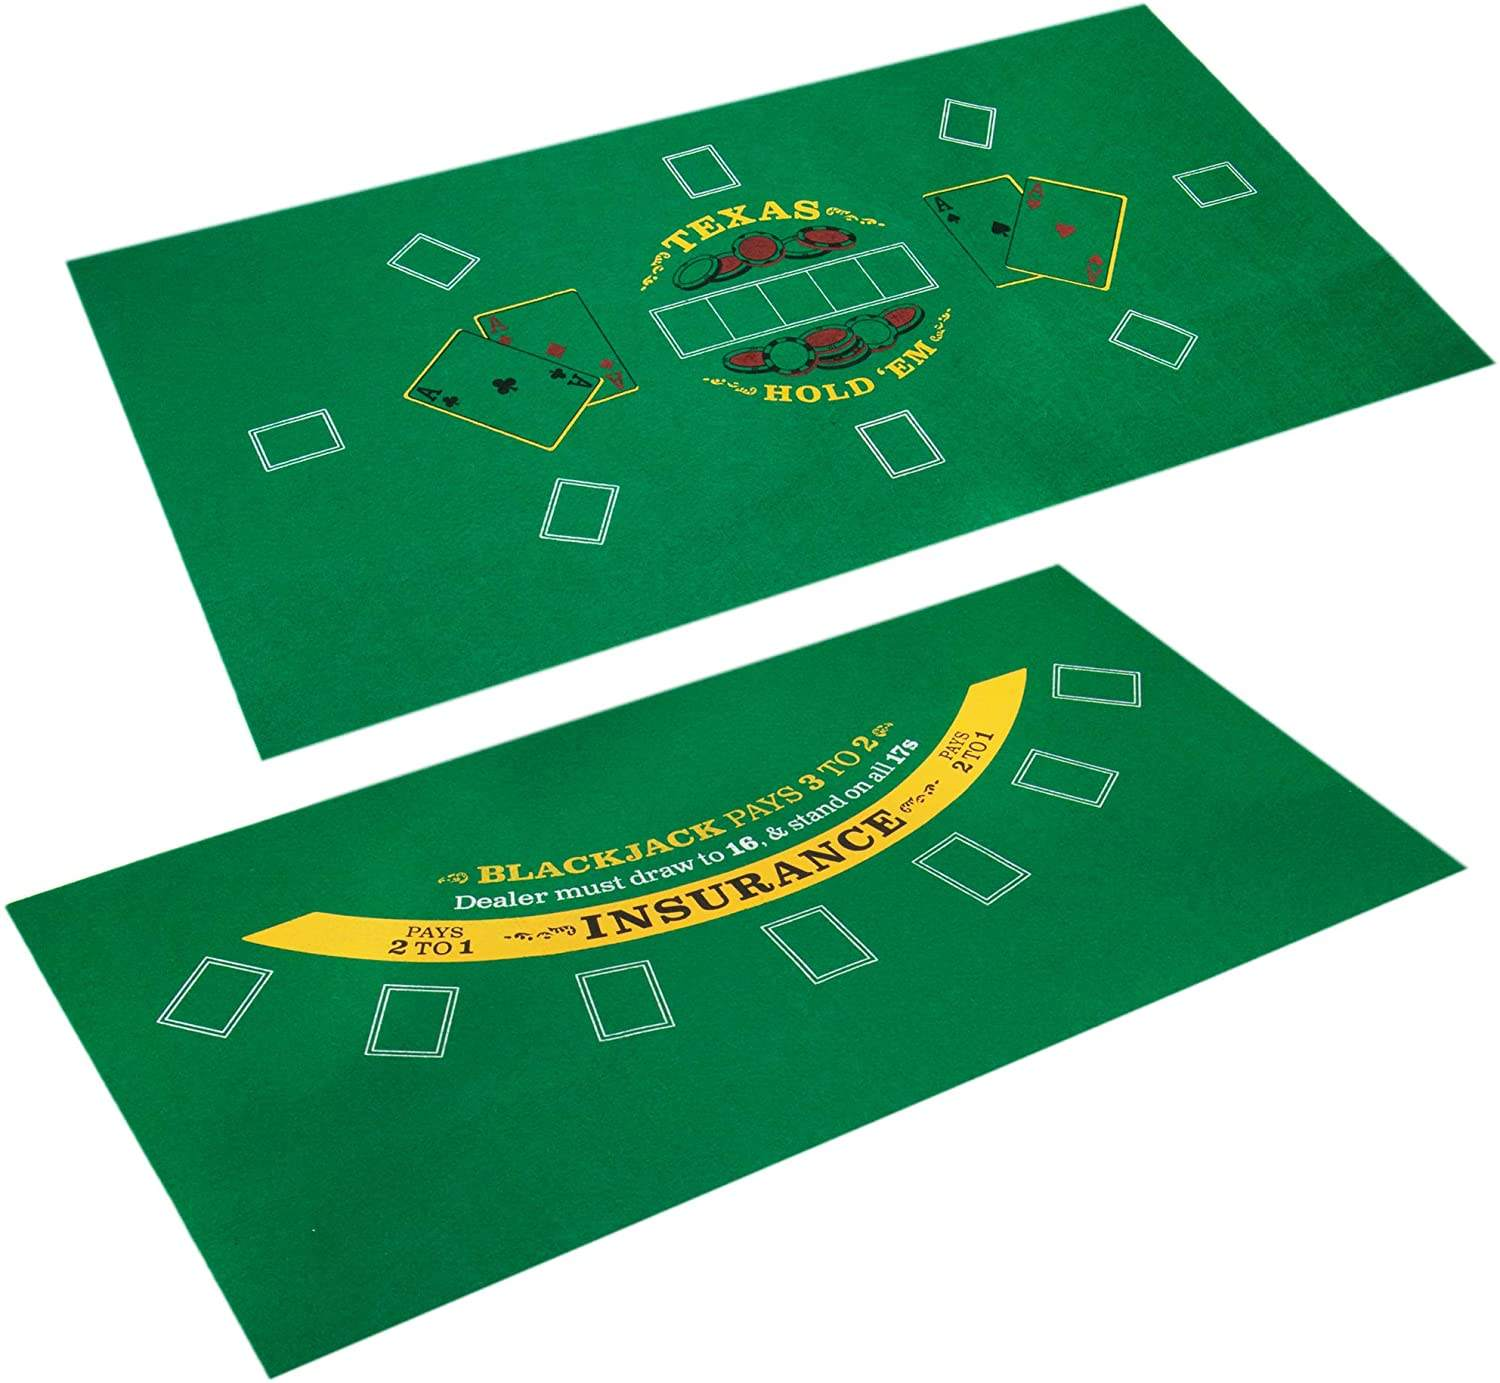 "Mesa de Poker Blackjack & Casino Mini Felt Conveniente Space-Saving 36 ""x 18"" Roll-up Casino esteira do jogo de Mesa"